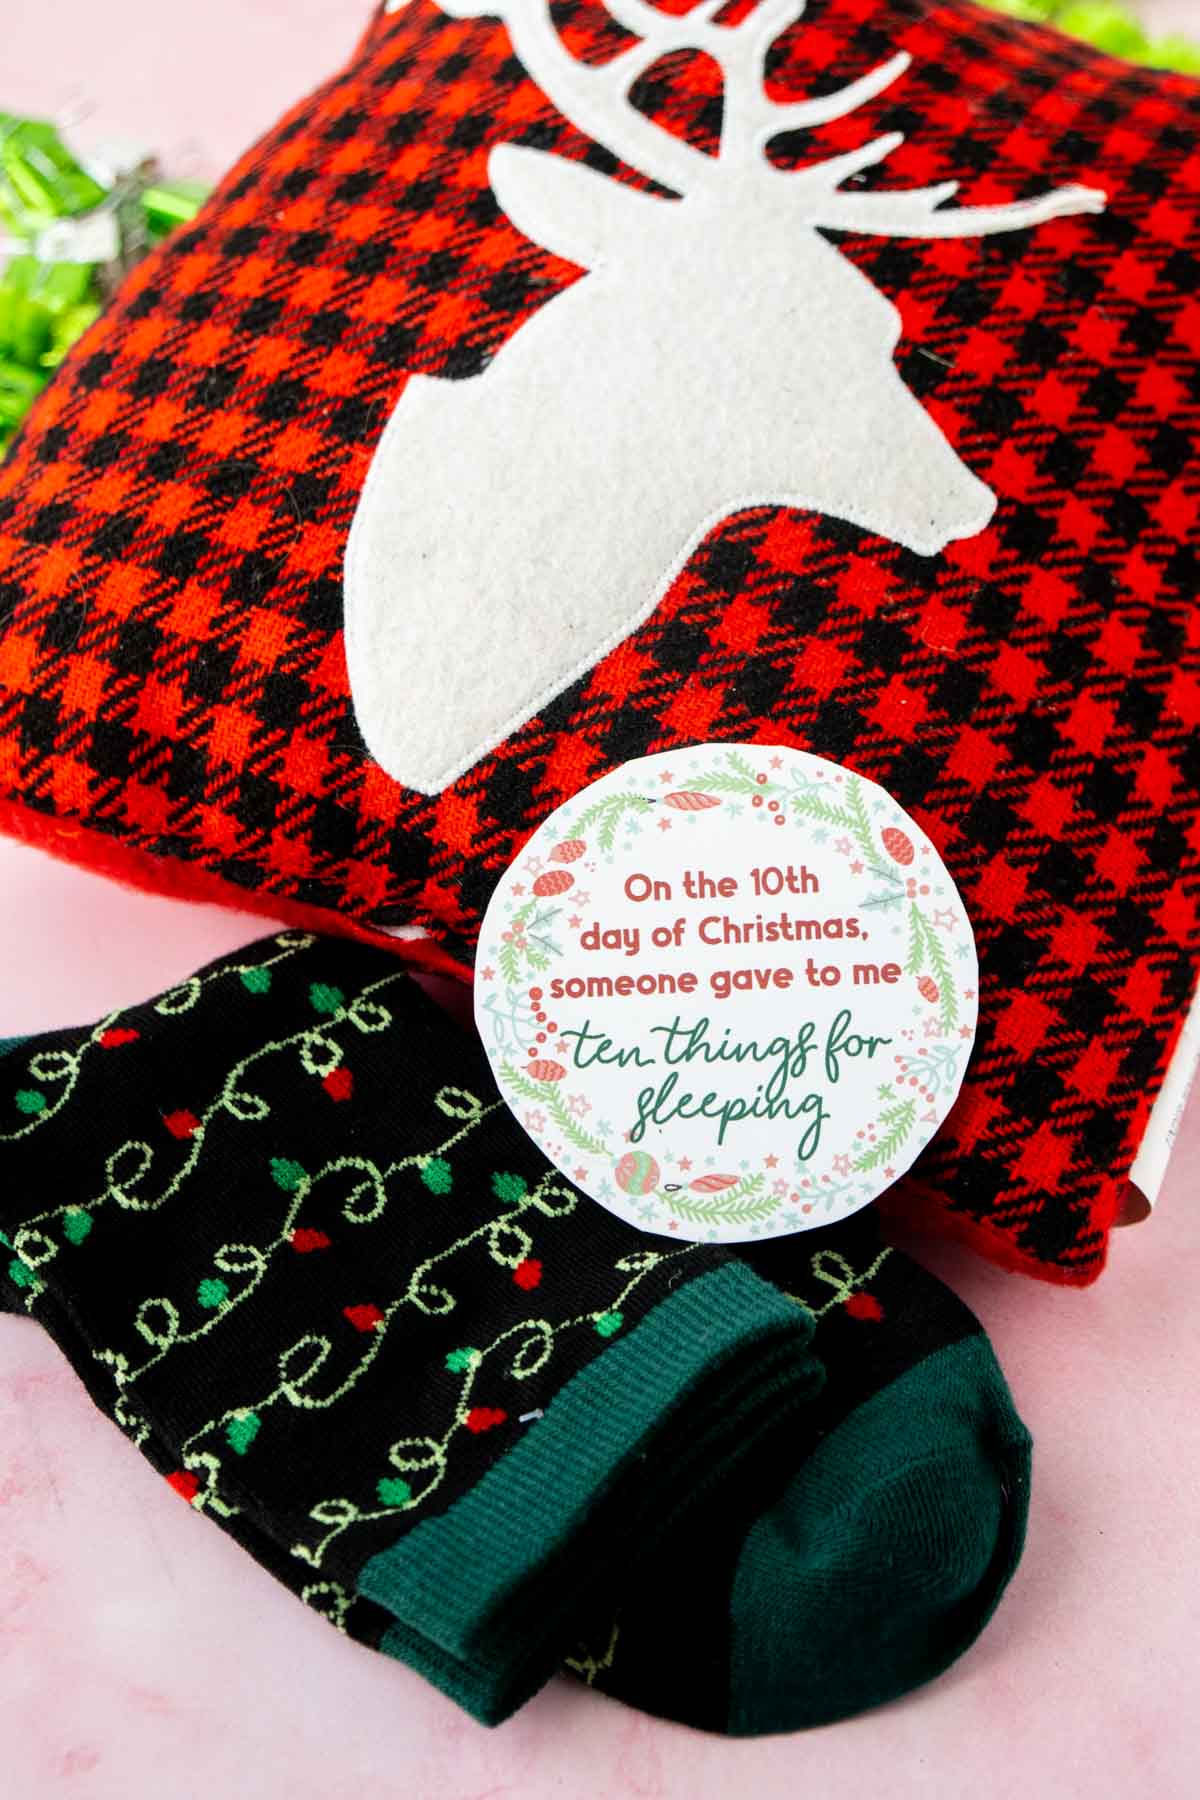 12 days of Christmas tag on top of a pillow and socks